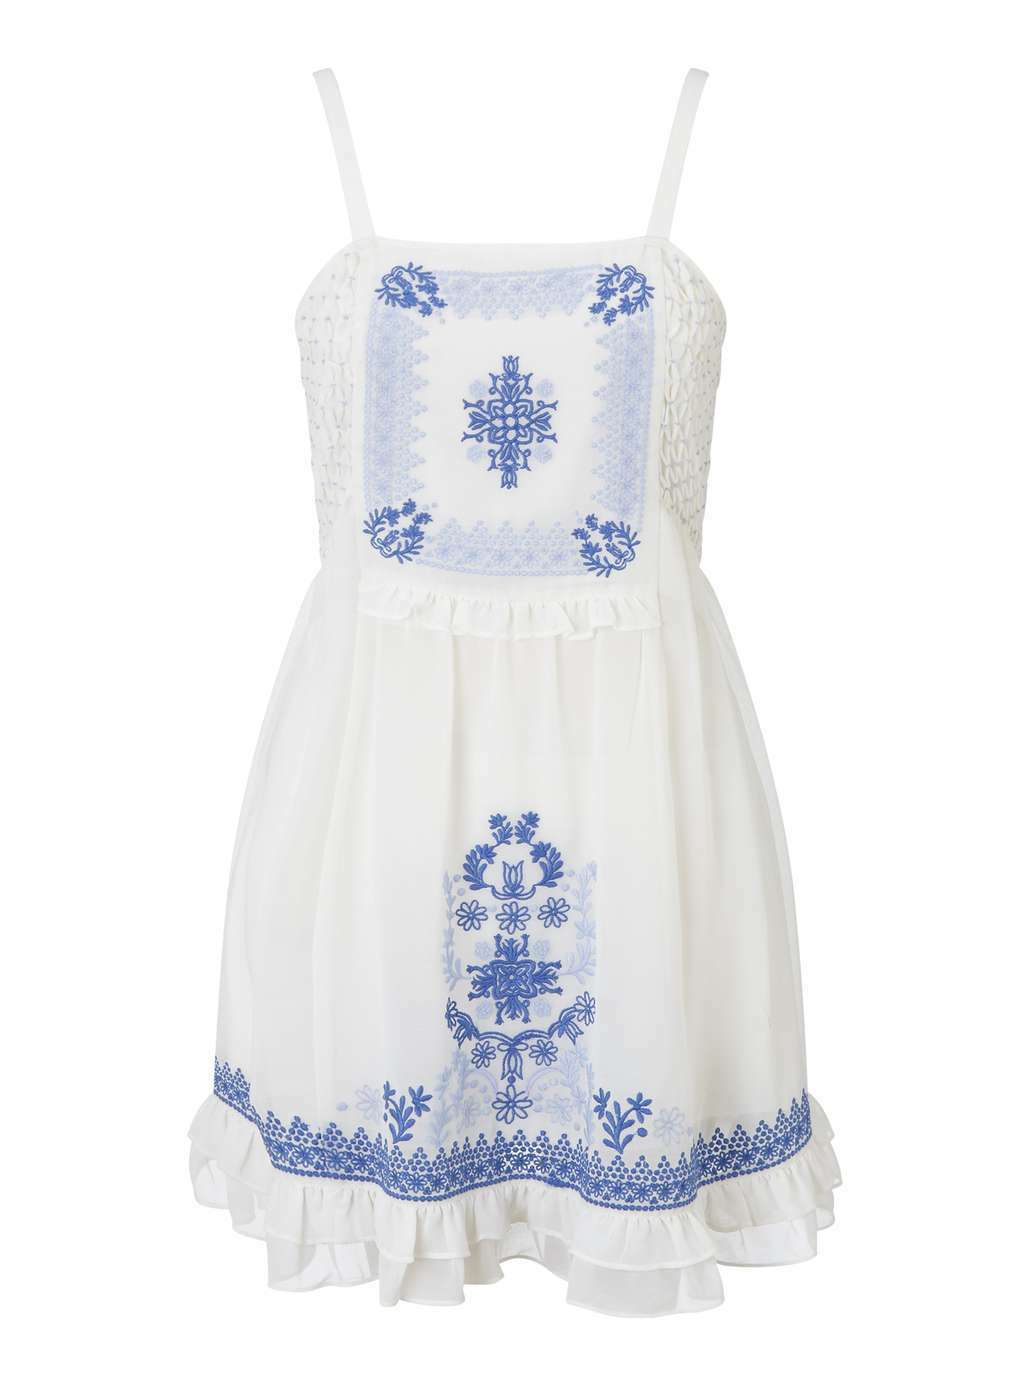 BNWT - Miss Selfridge Embroidered Summer Holiday Dress (White bluee) Size